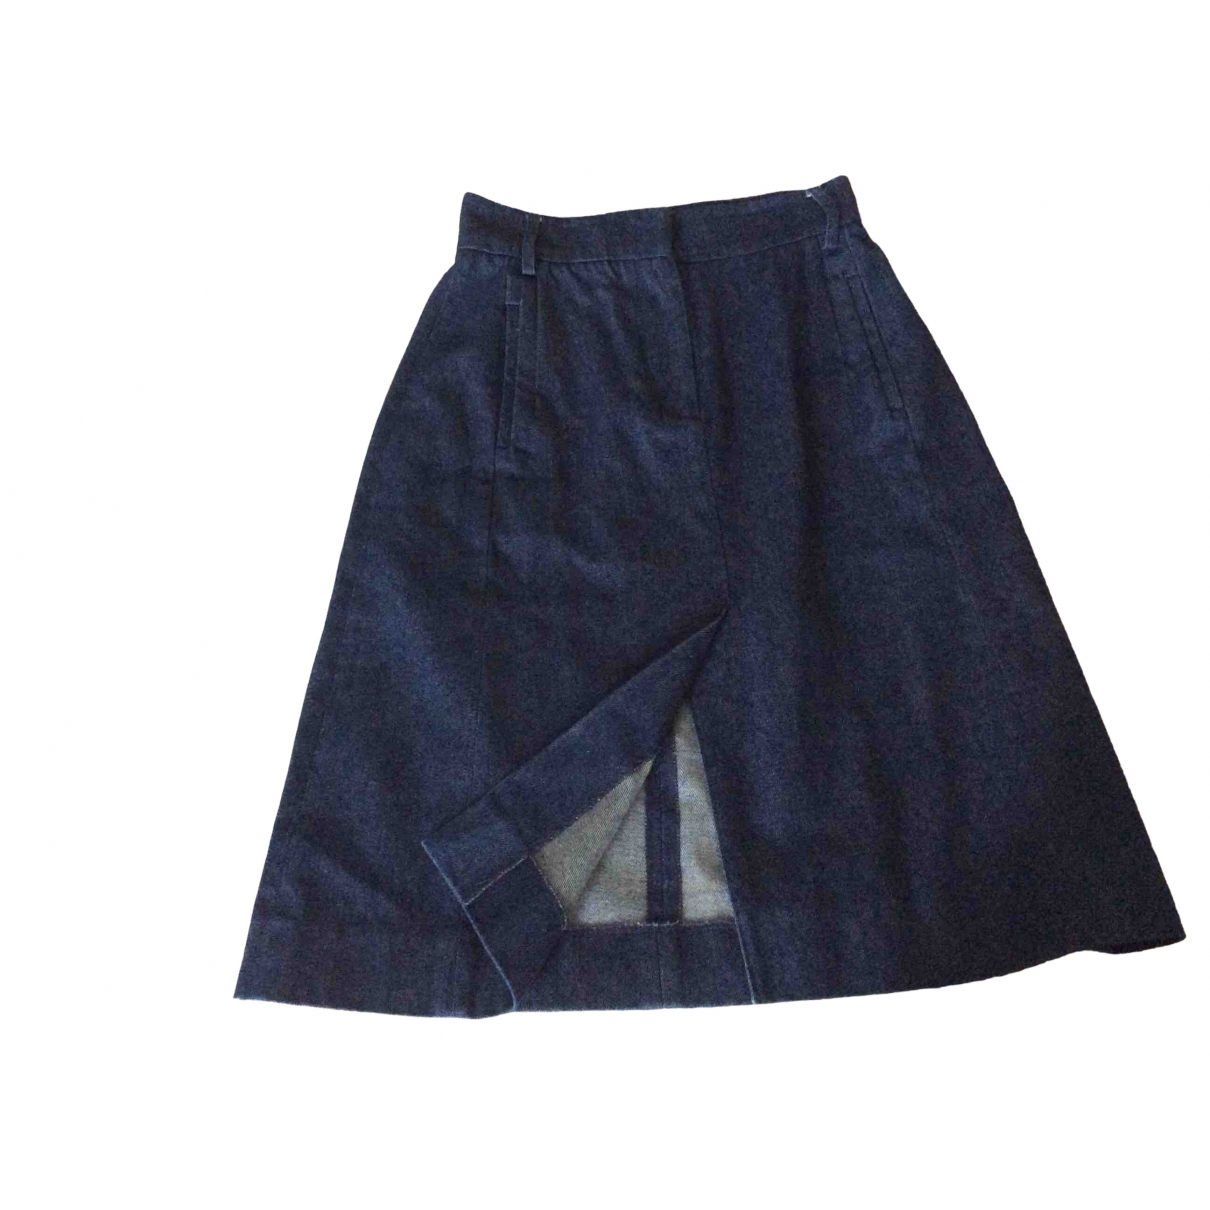 Antipodium \N Blue Cotton skirt for Women 6 UK